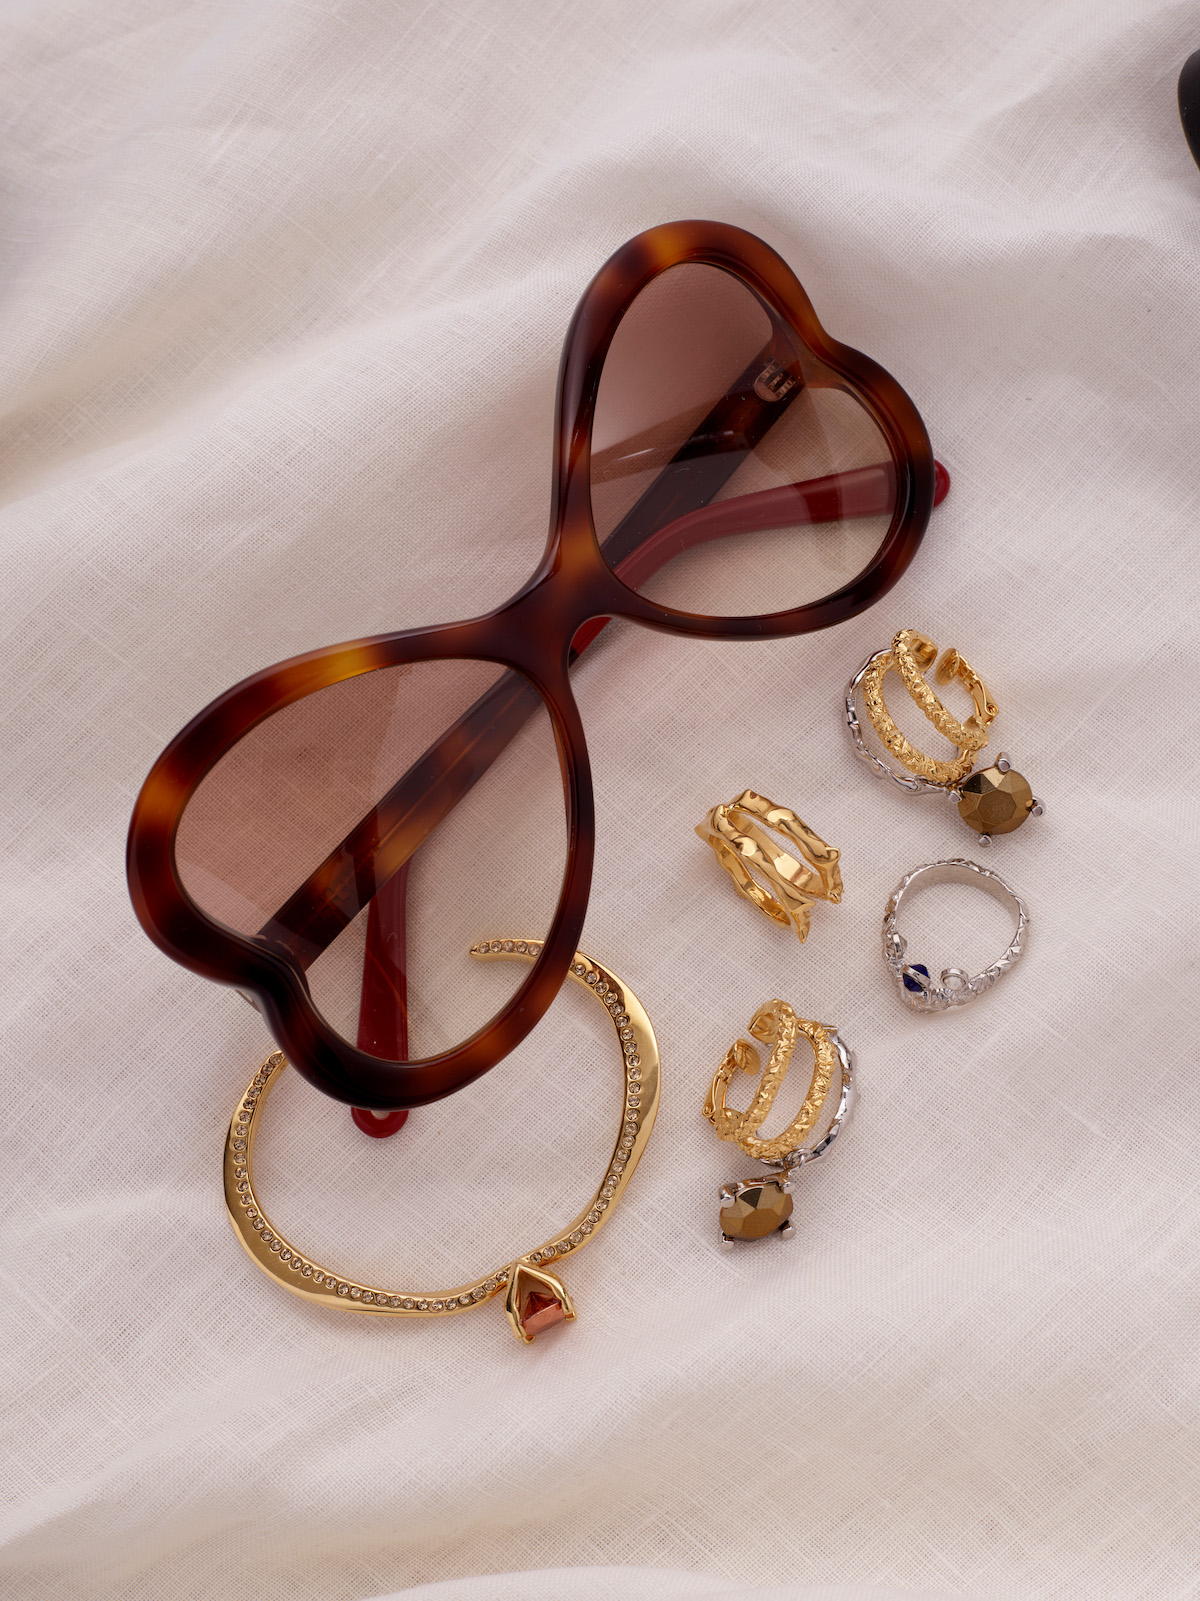 Chlo_SS2020 - Accessories 27